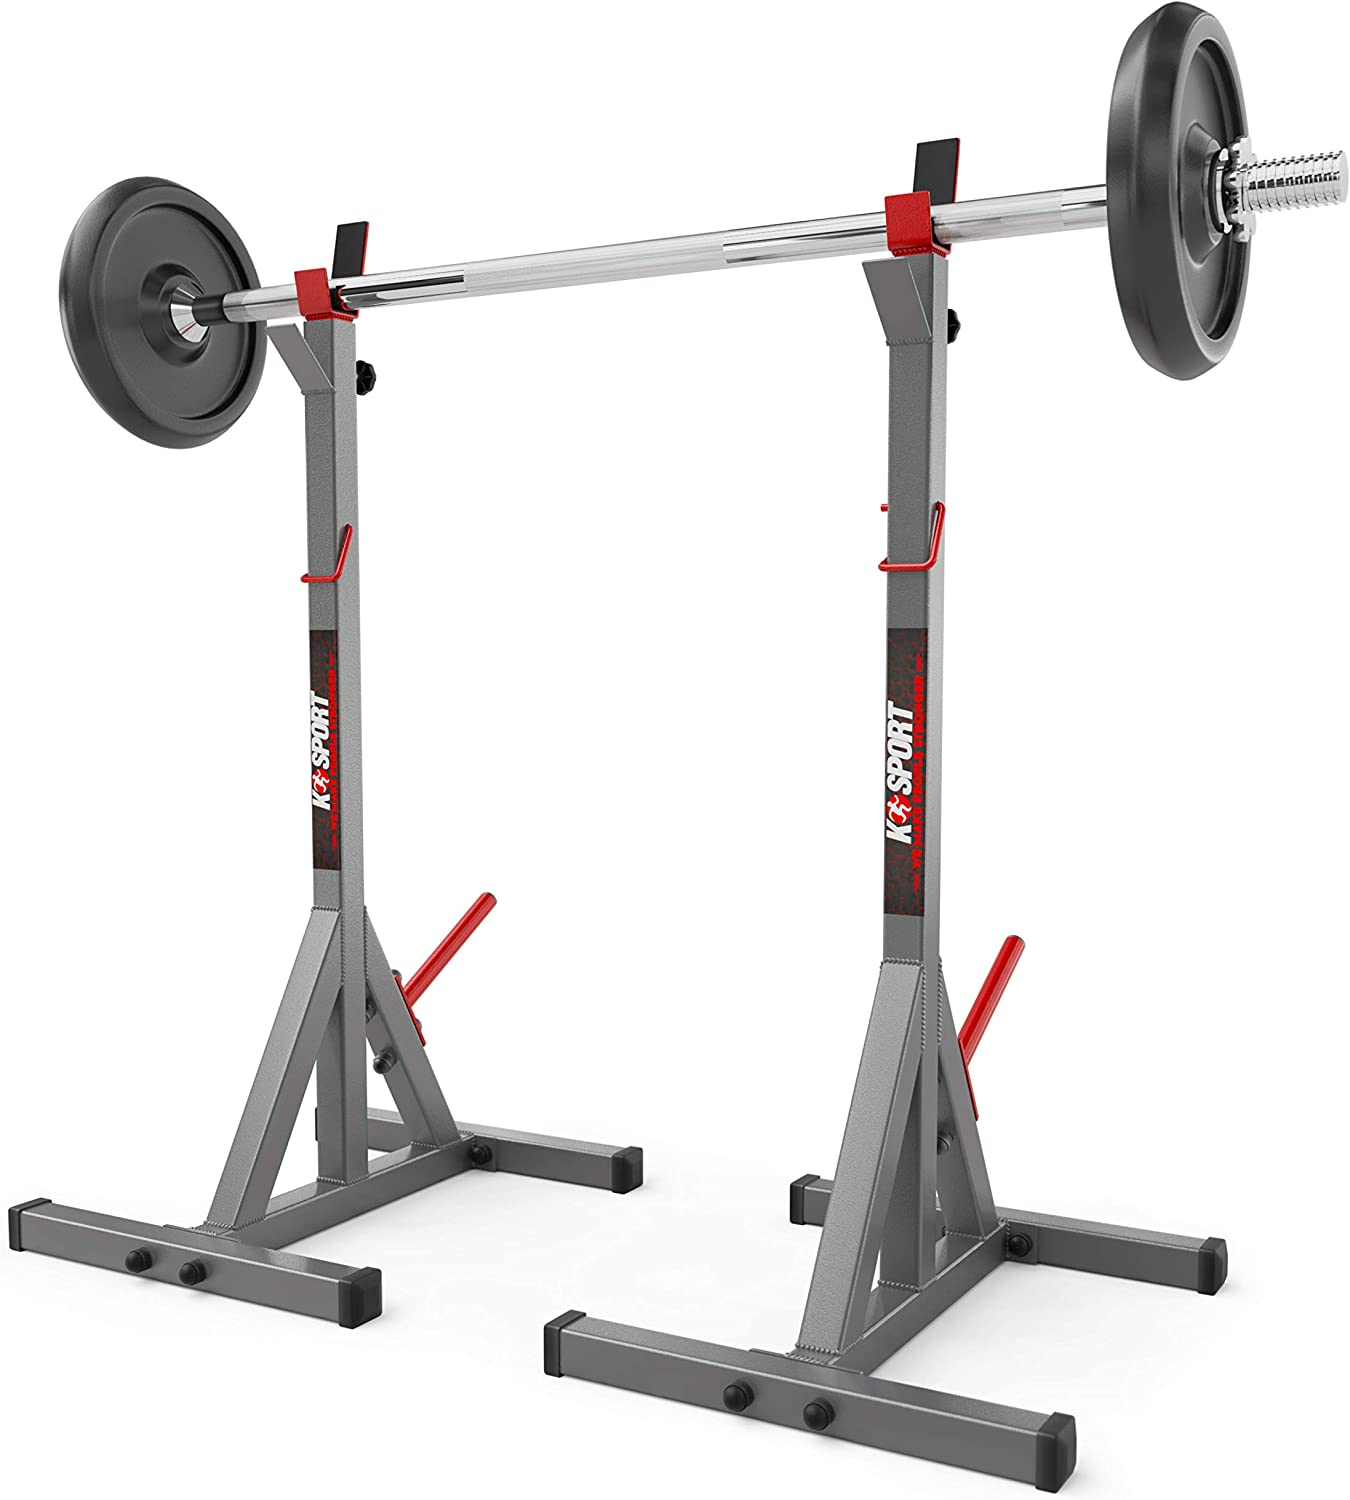 K-Sport Squat Stands bei amazon kaufen